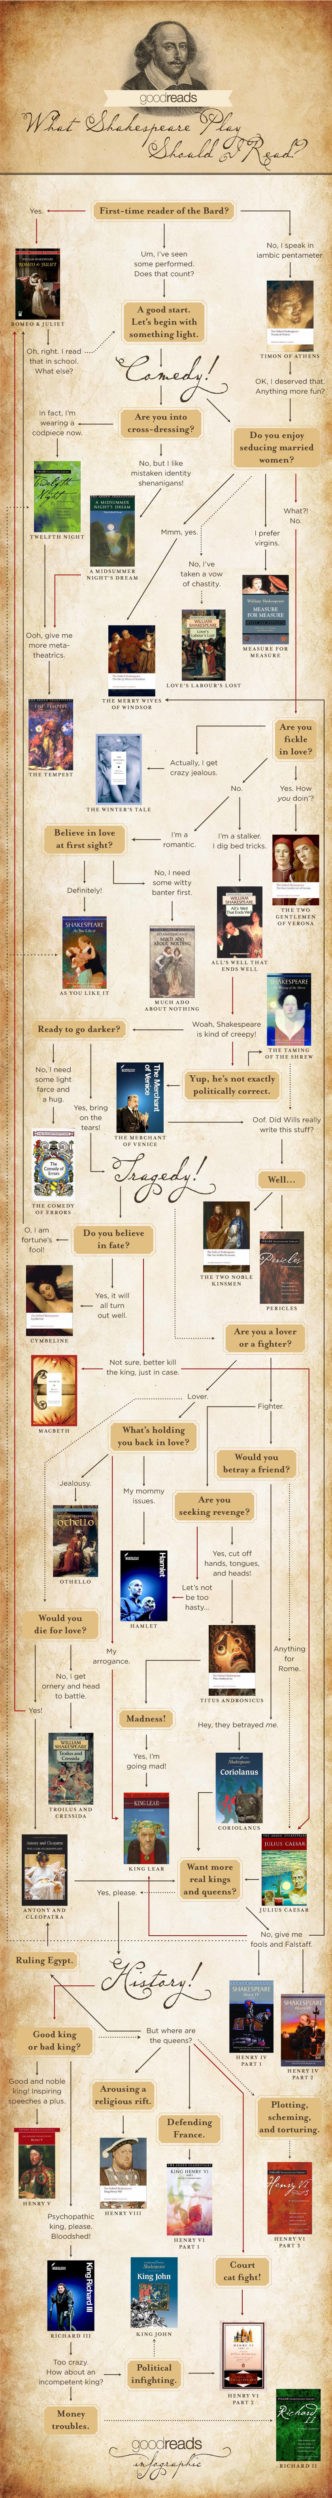 What Shakespeare play should I read #infographic #flowchart